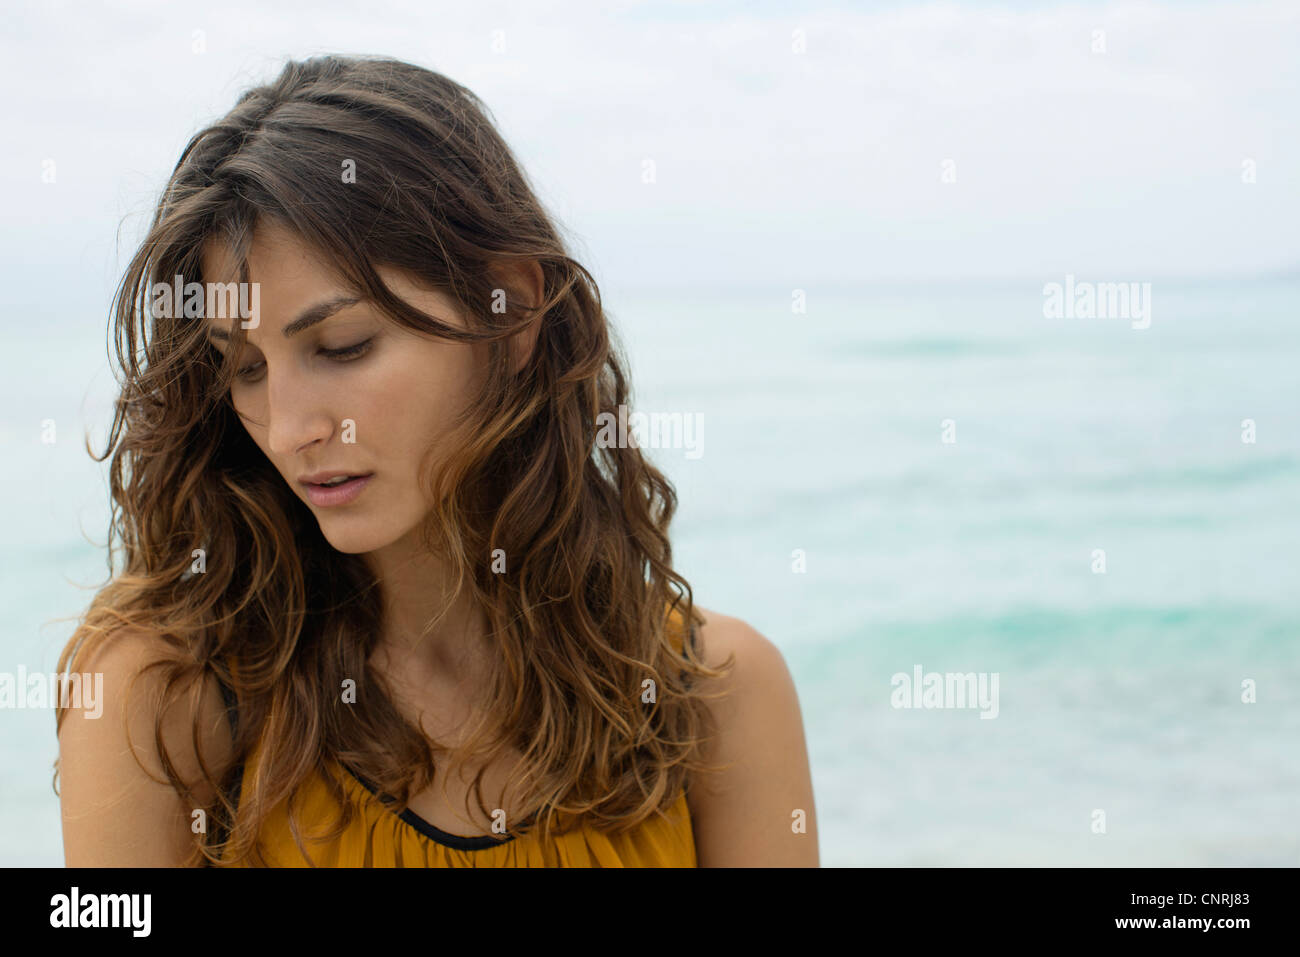 Young woman looking down - Stock Image